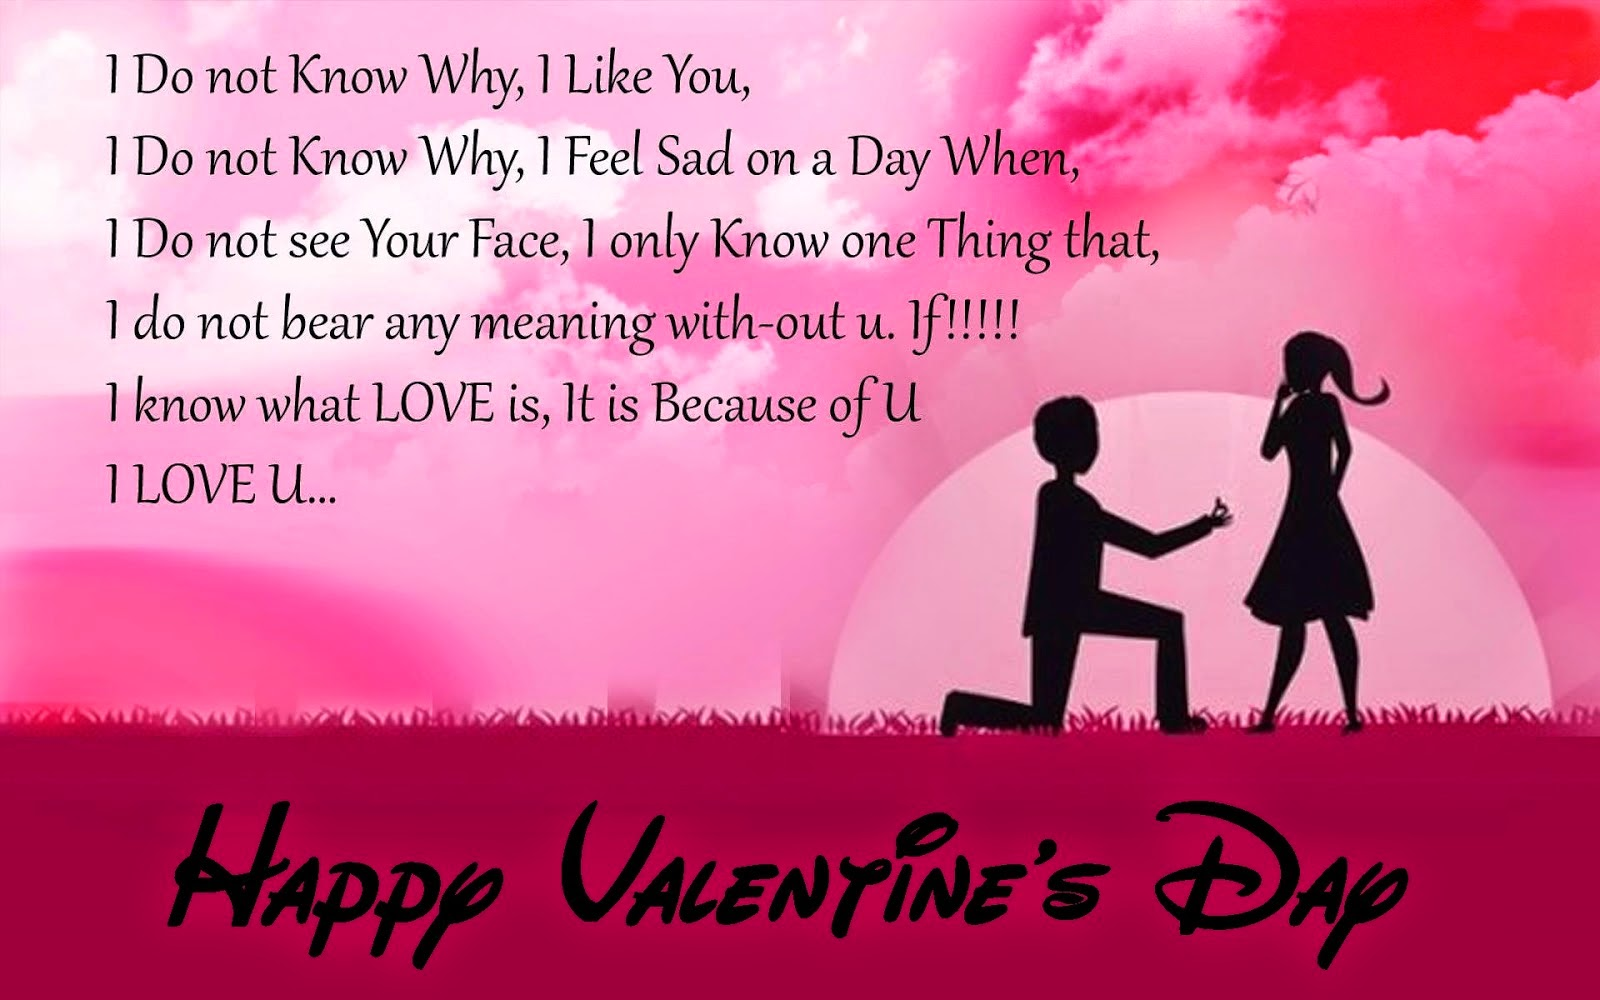 Valentines Day Love Quotes For Her Mesmerizing Cute Valentine Quotes For Her  Top Ten Quotes